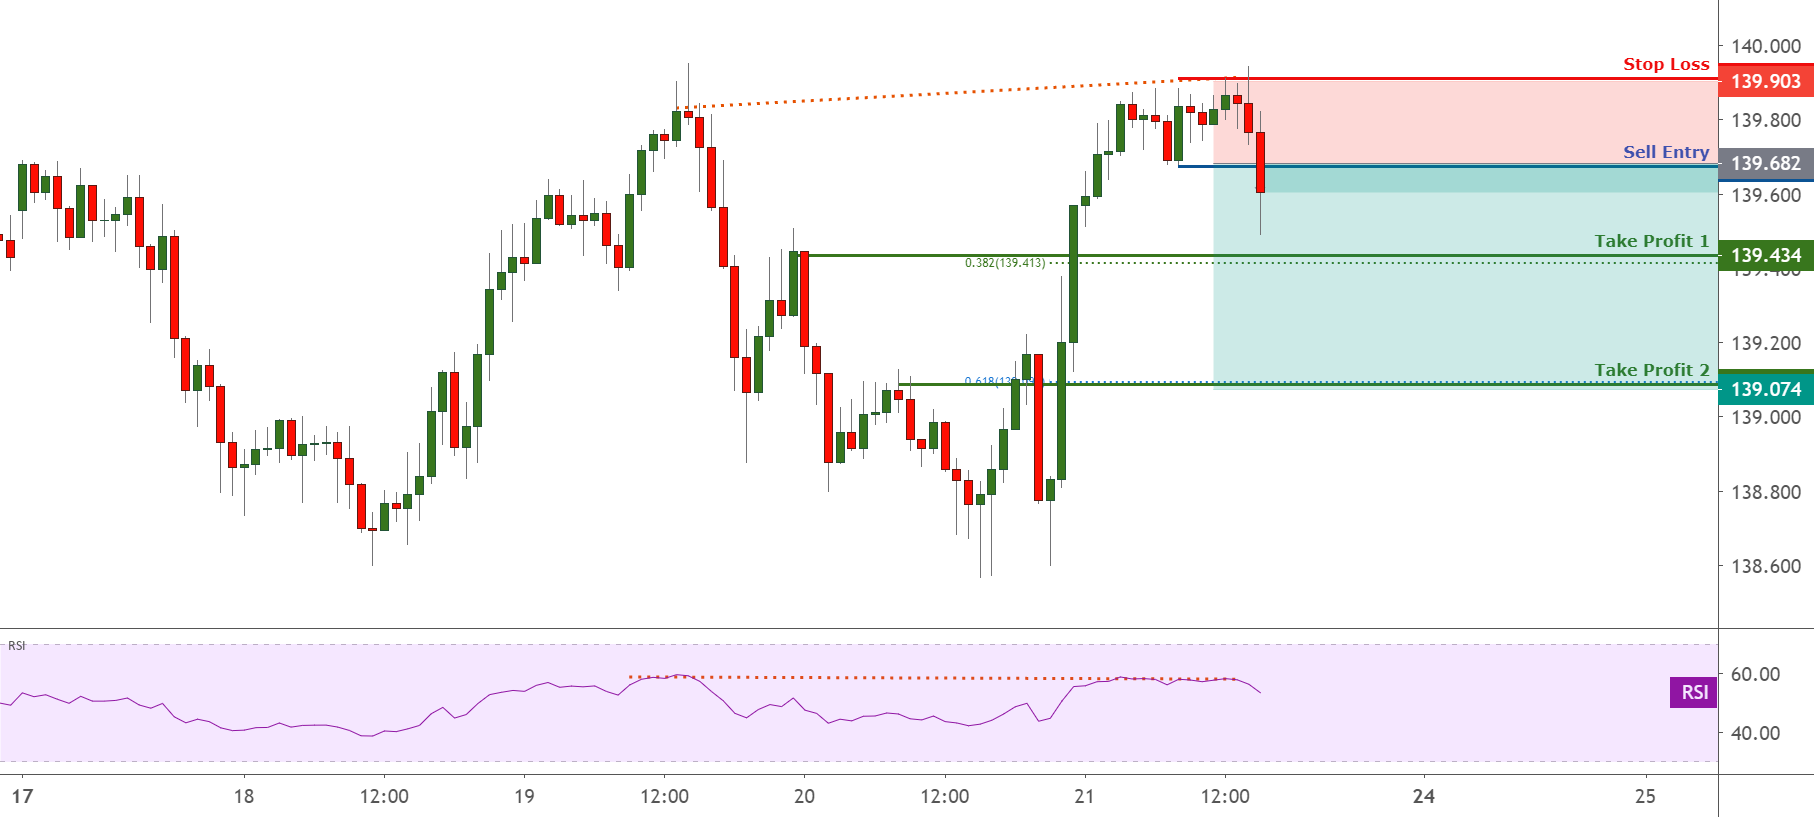 GBPJPY is seeing bearish divergence, potential drop ! for FX:GBPJPY by FXCM